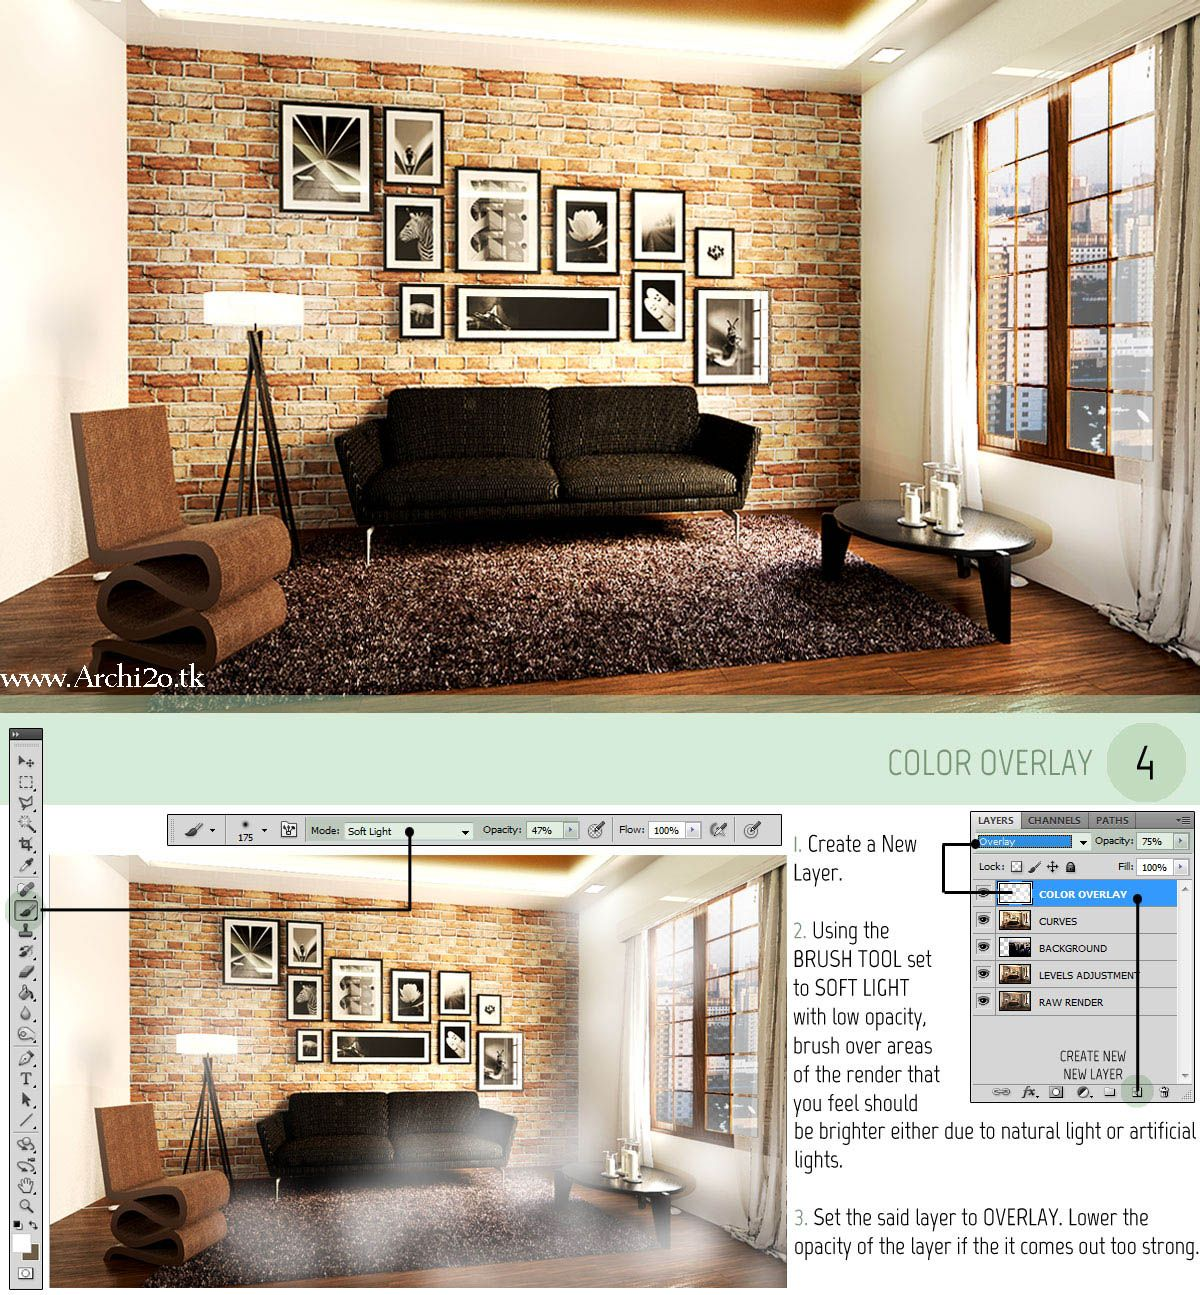 Pin by marcella tammi on masters pinterest tutorials vray for sketchup tutorial part post processing i manipulate photos a lot what i do with my renderings is no different sketchup tutorial vray setting baditri Images